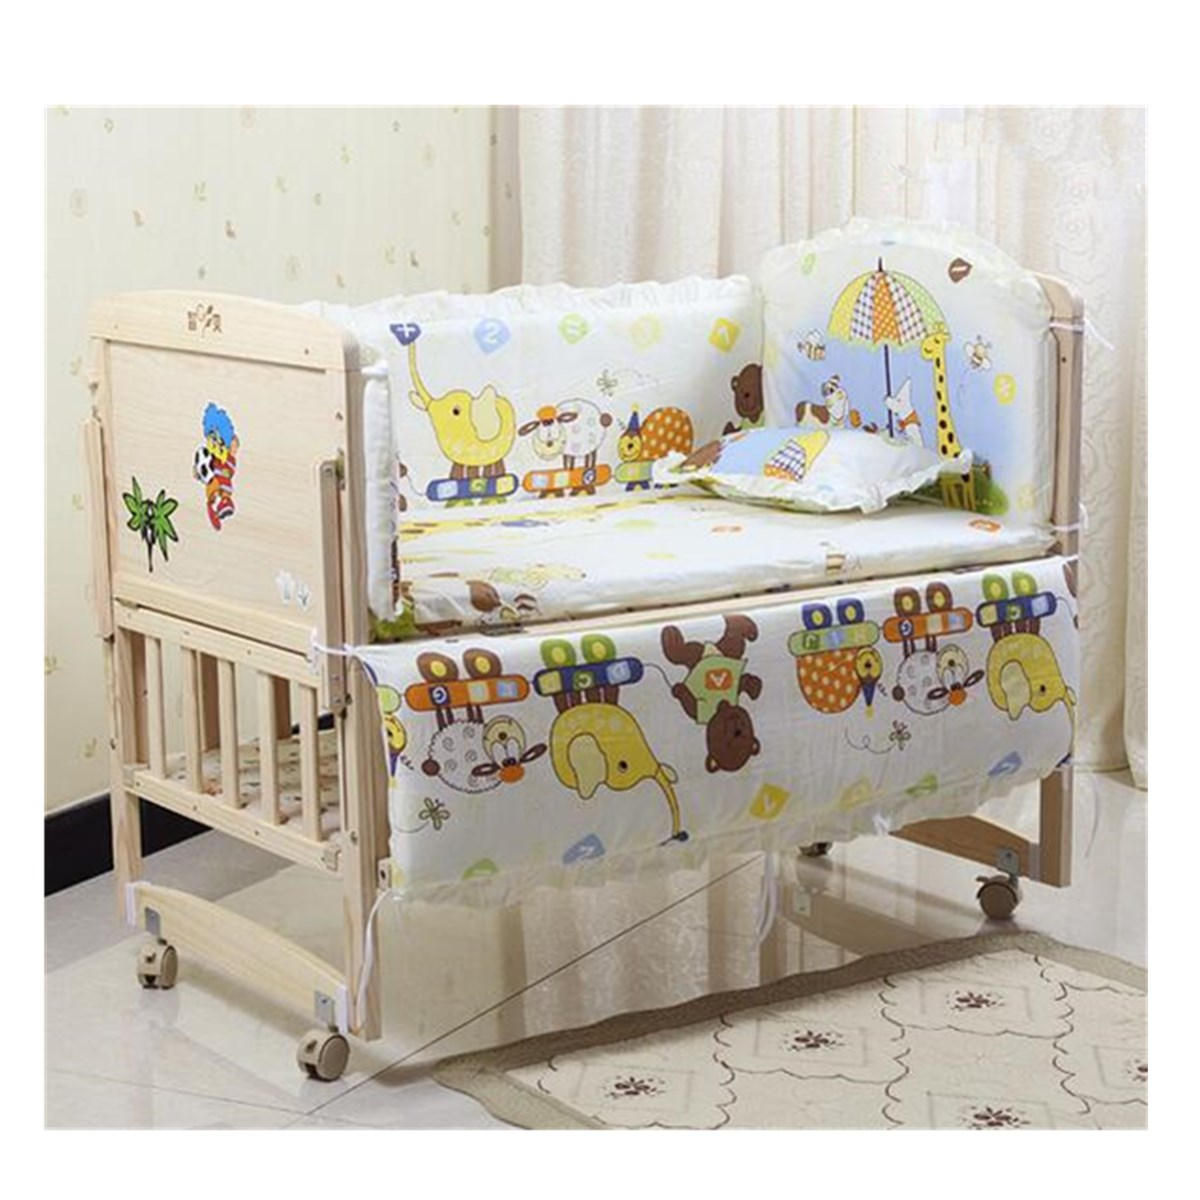 5pcs Baby Nursery Bedding Sets Cartoon Cot Bumper Cute Newborn Nursery Bedding Set Fit Infant Baby Crib Bedding Set 120x60cm5pcs Baby Nursery Bedding Sets Cartoon Cot Bumper Cute Newborn Nursery Bedding Set Fit Infant Baby Crib Bedding Set 120x60cm